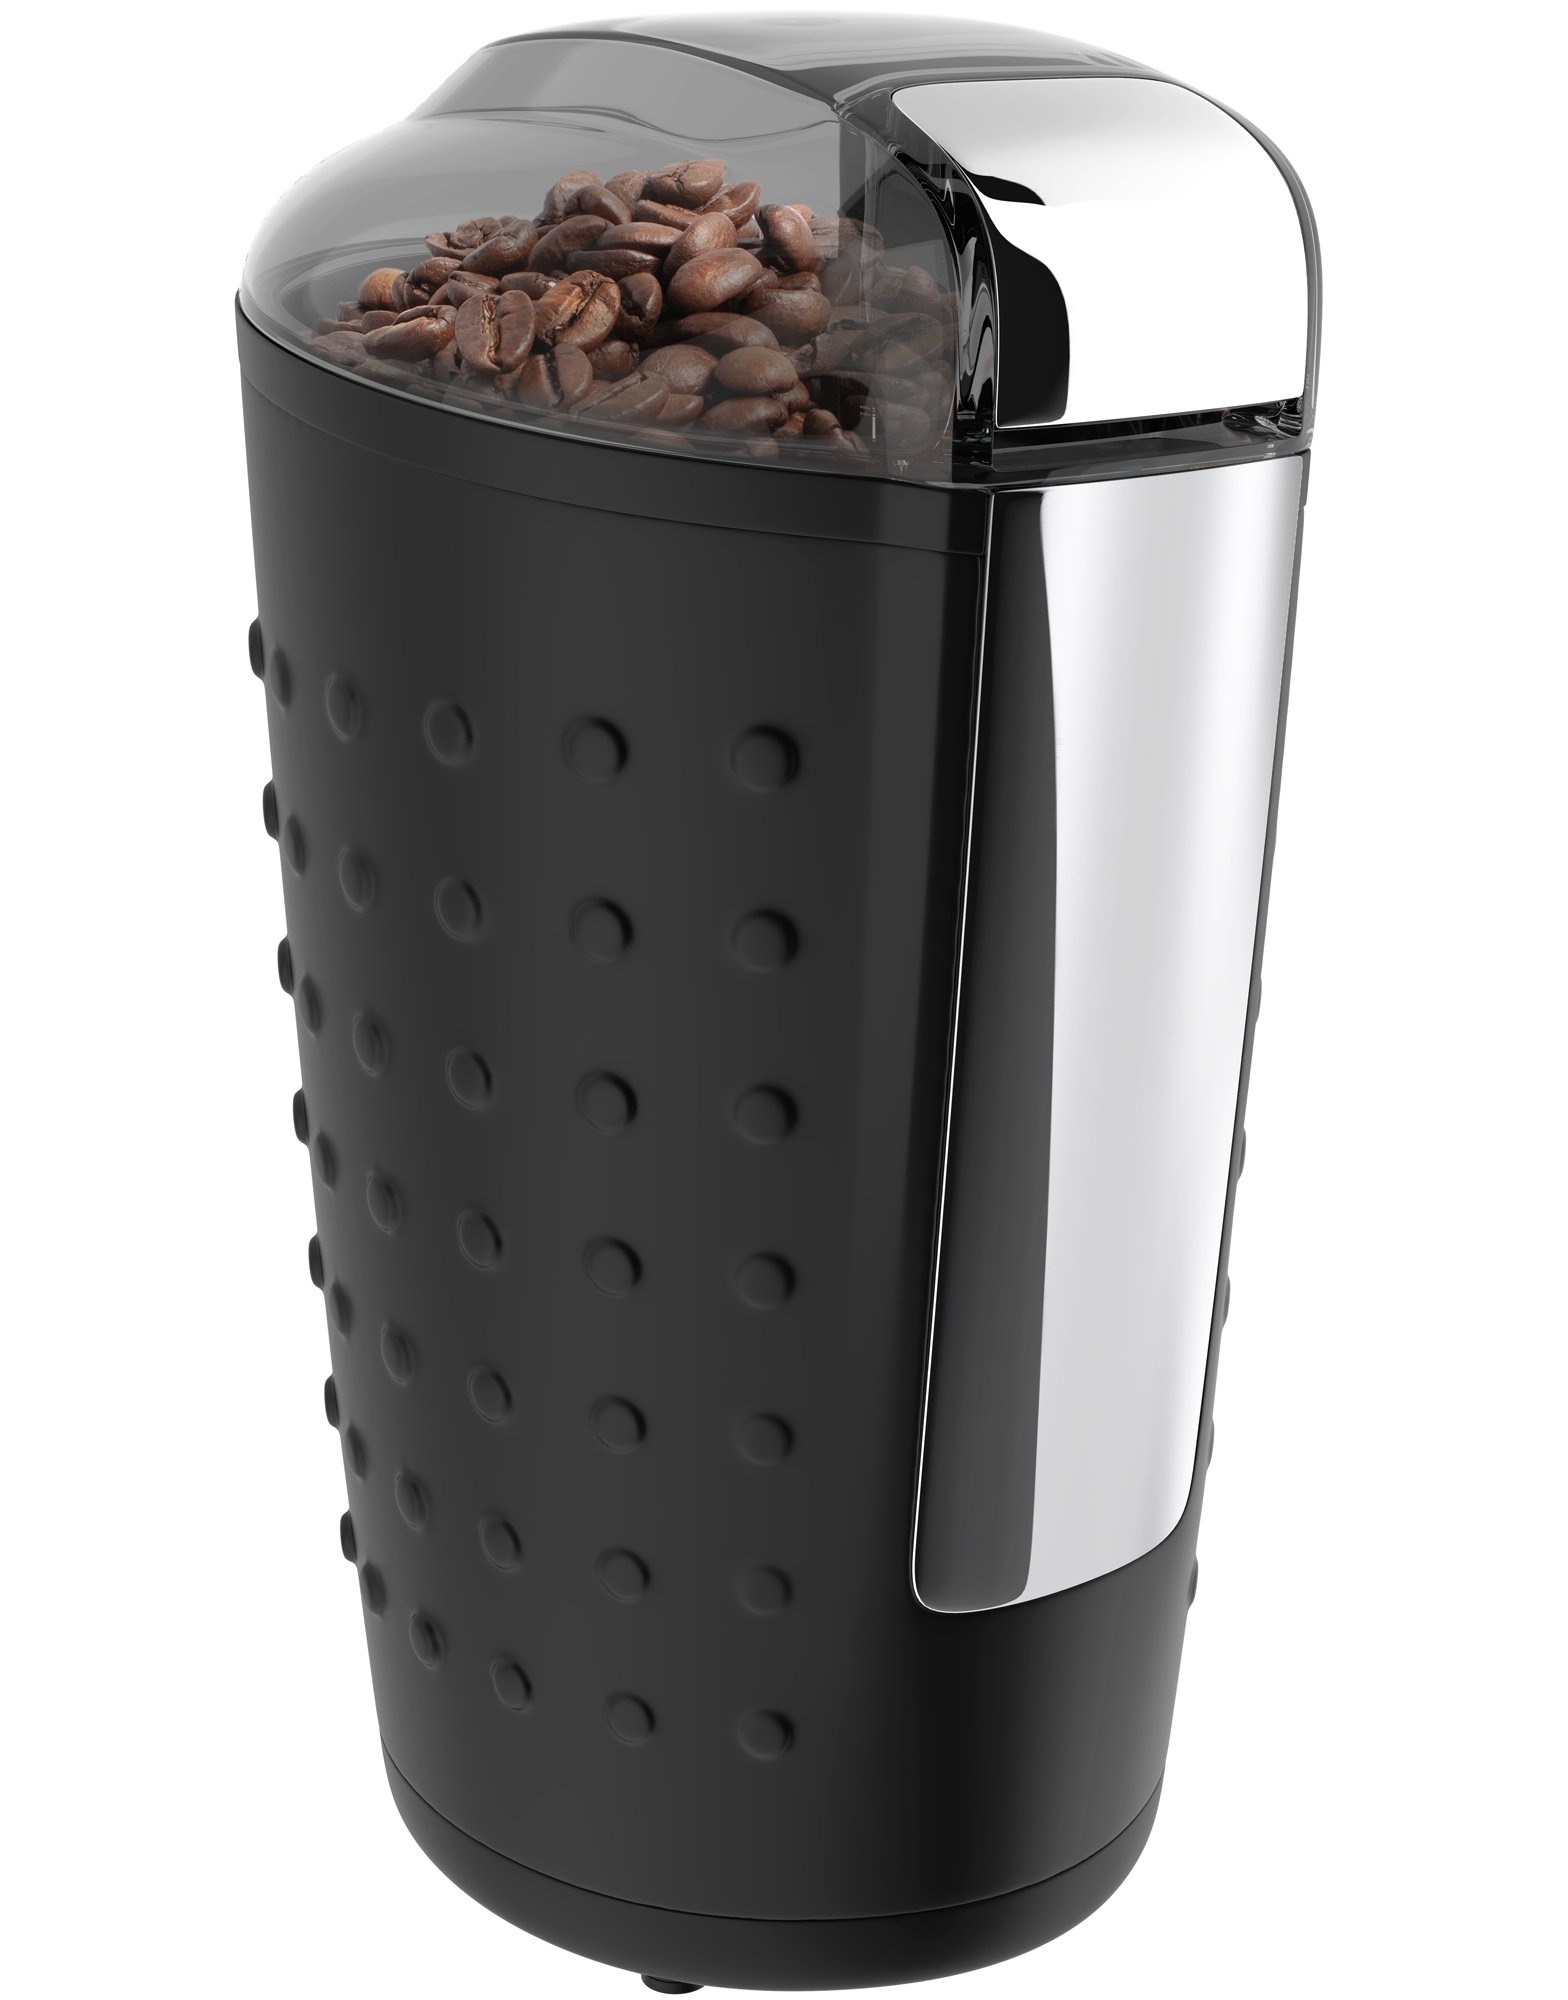 Vremi Electric Coffee Grinder - 150 Watt Portable Coffee Bean Grinder with Easy Touch Settings Stainless Steel Blades - Grinds Coarse Fine Ground Beans for 12 to 14 Cups of Coffees - Black by Vremi